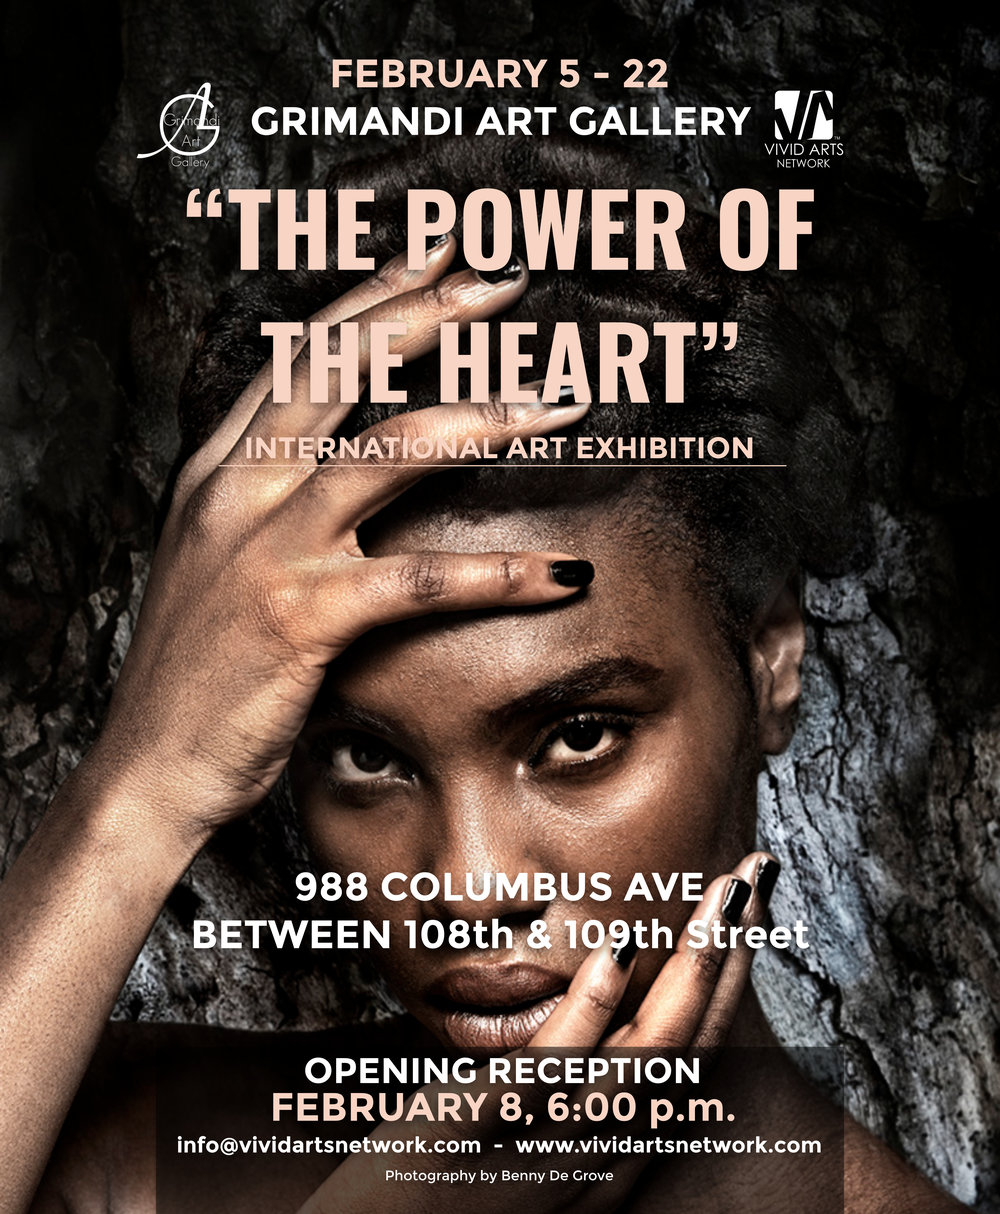 """""""The power of the heart"""" - INTERNATIONAL ART EXHIBITION"""